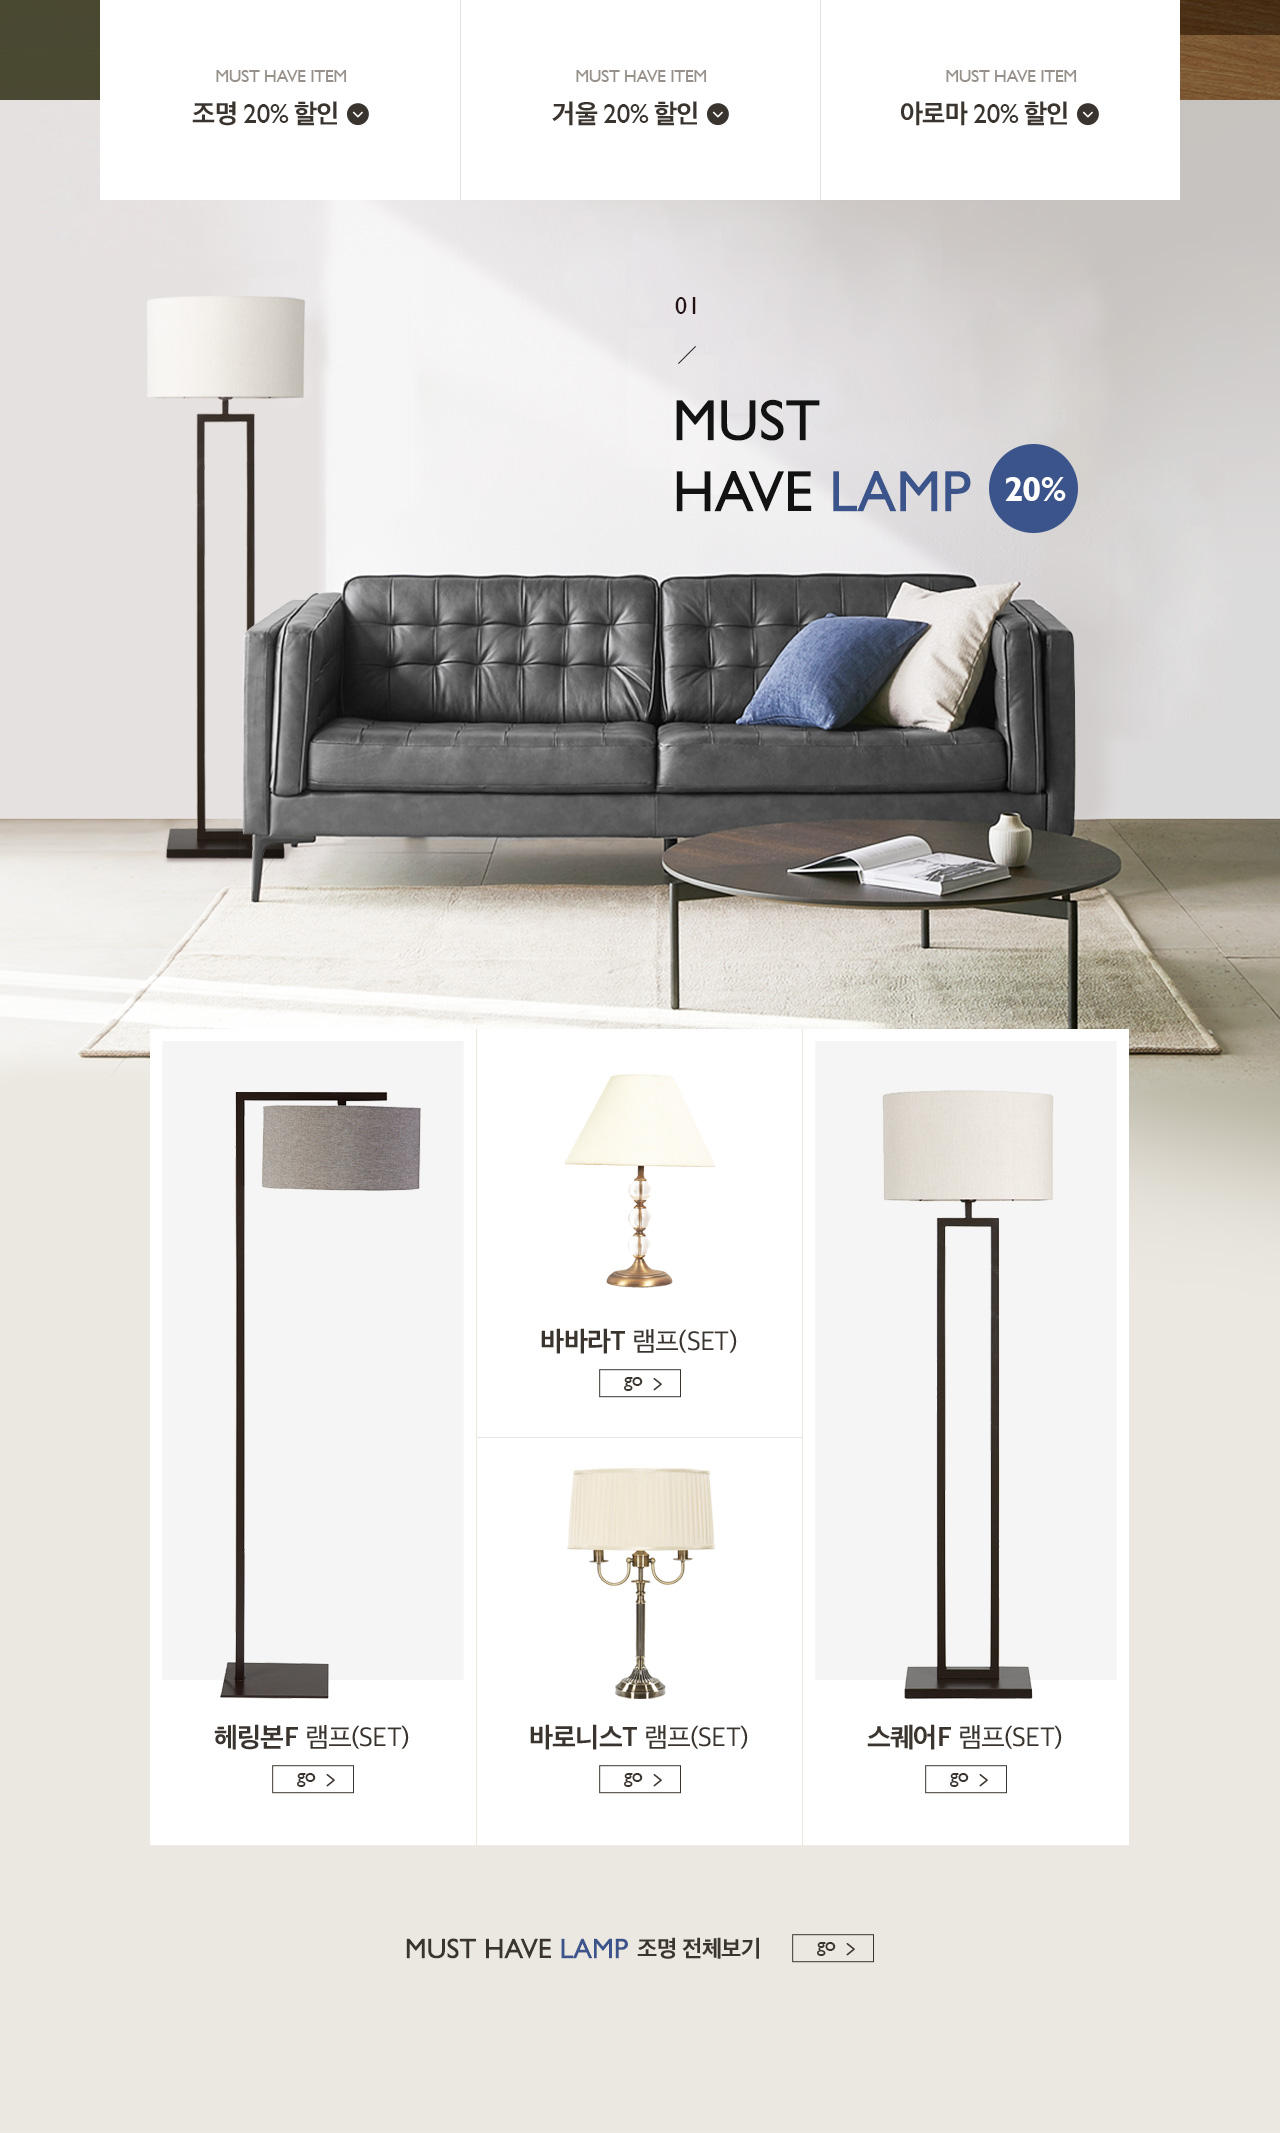 MUST HAVE LAMP 20%